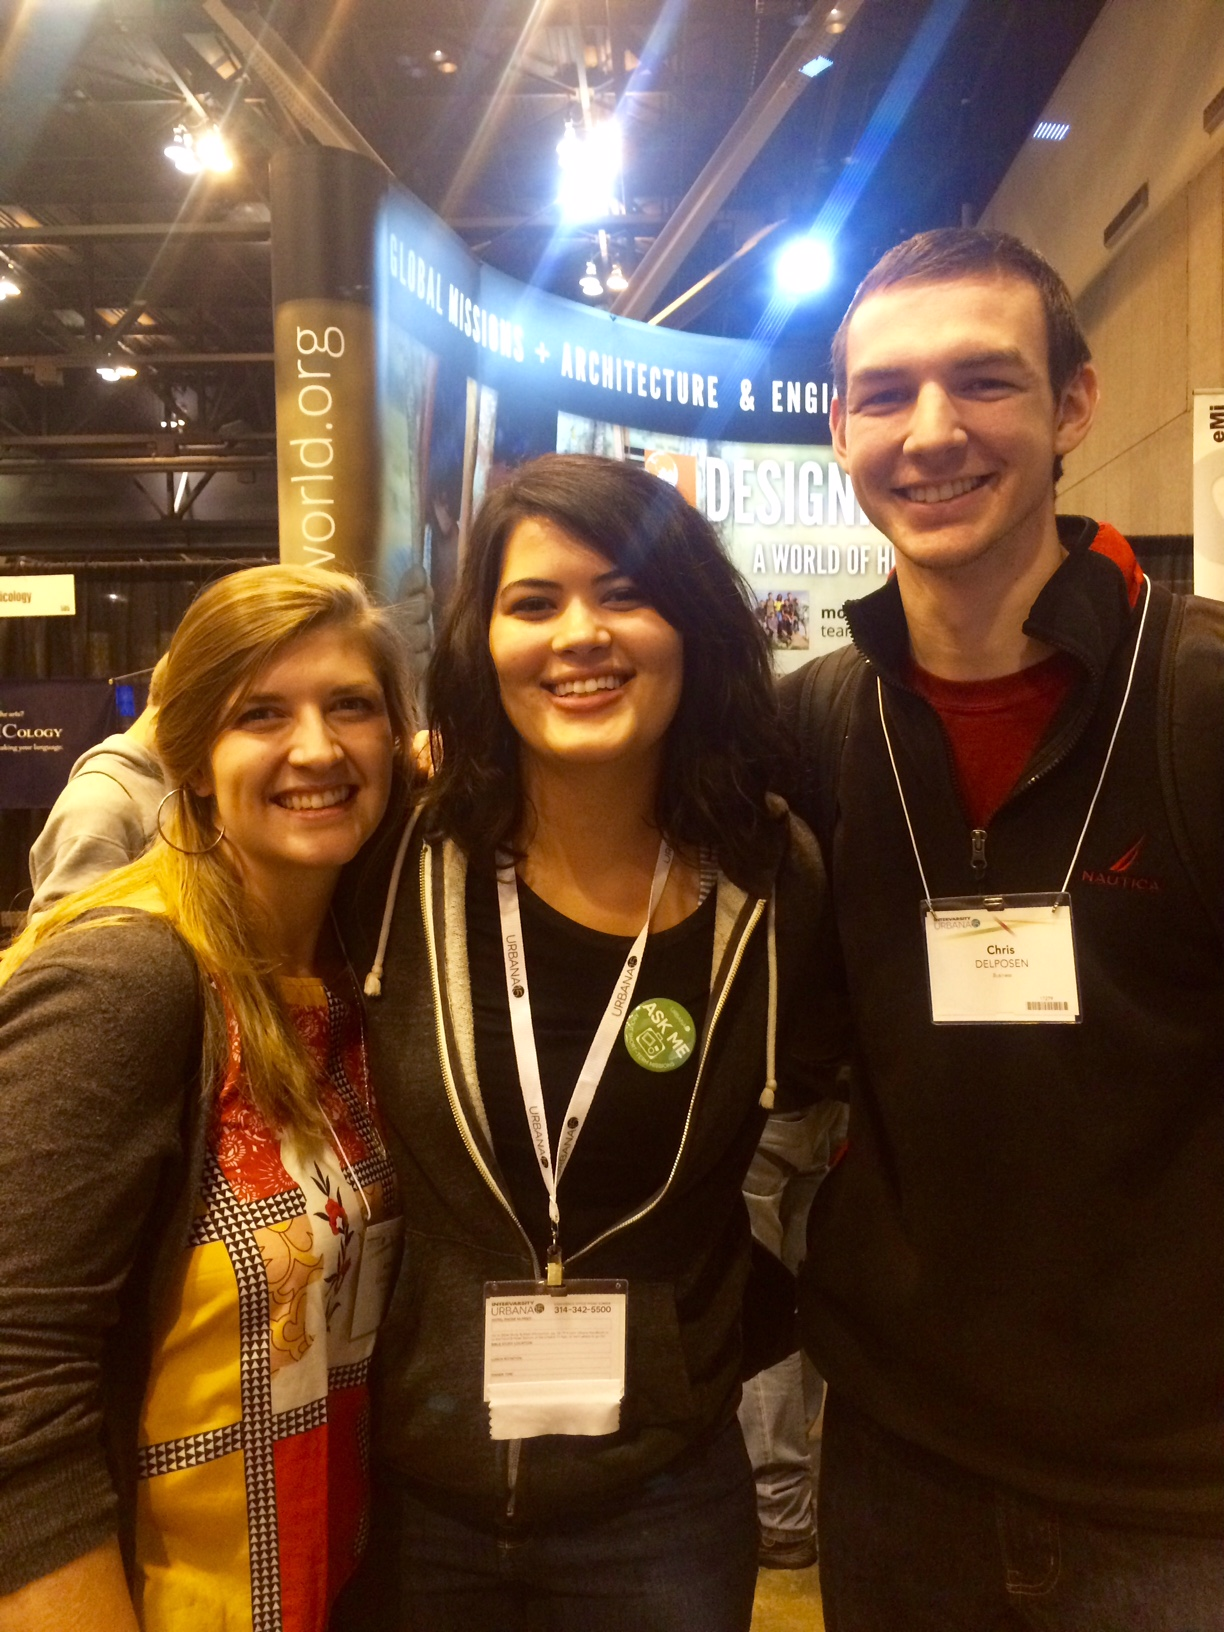 With Amy and Chris at the Cornerstone booth at Urbana.